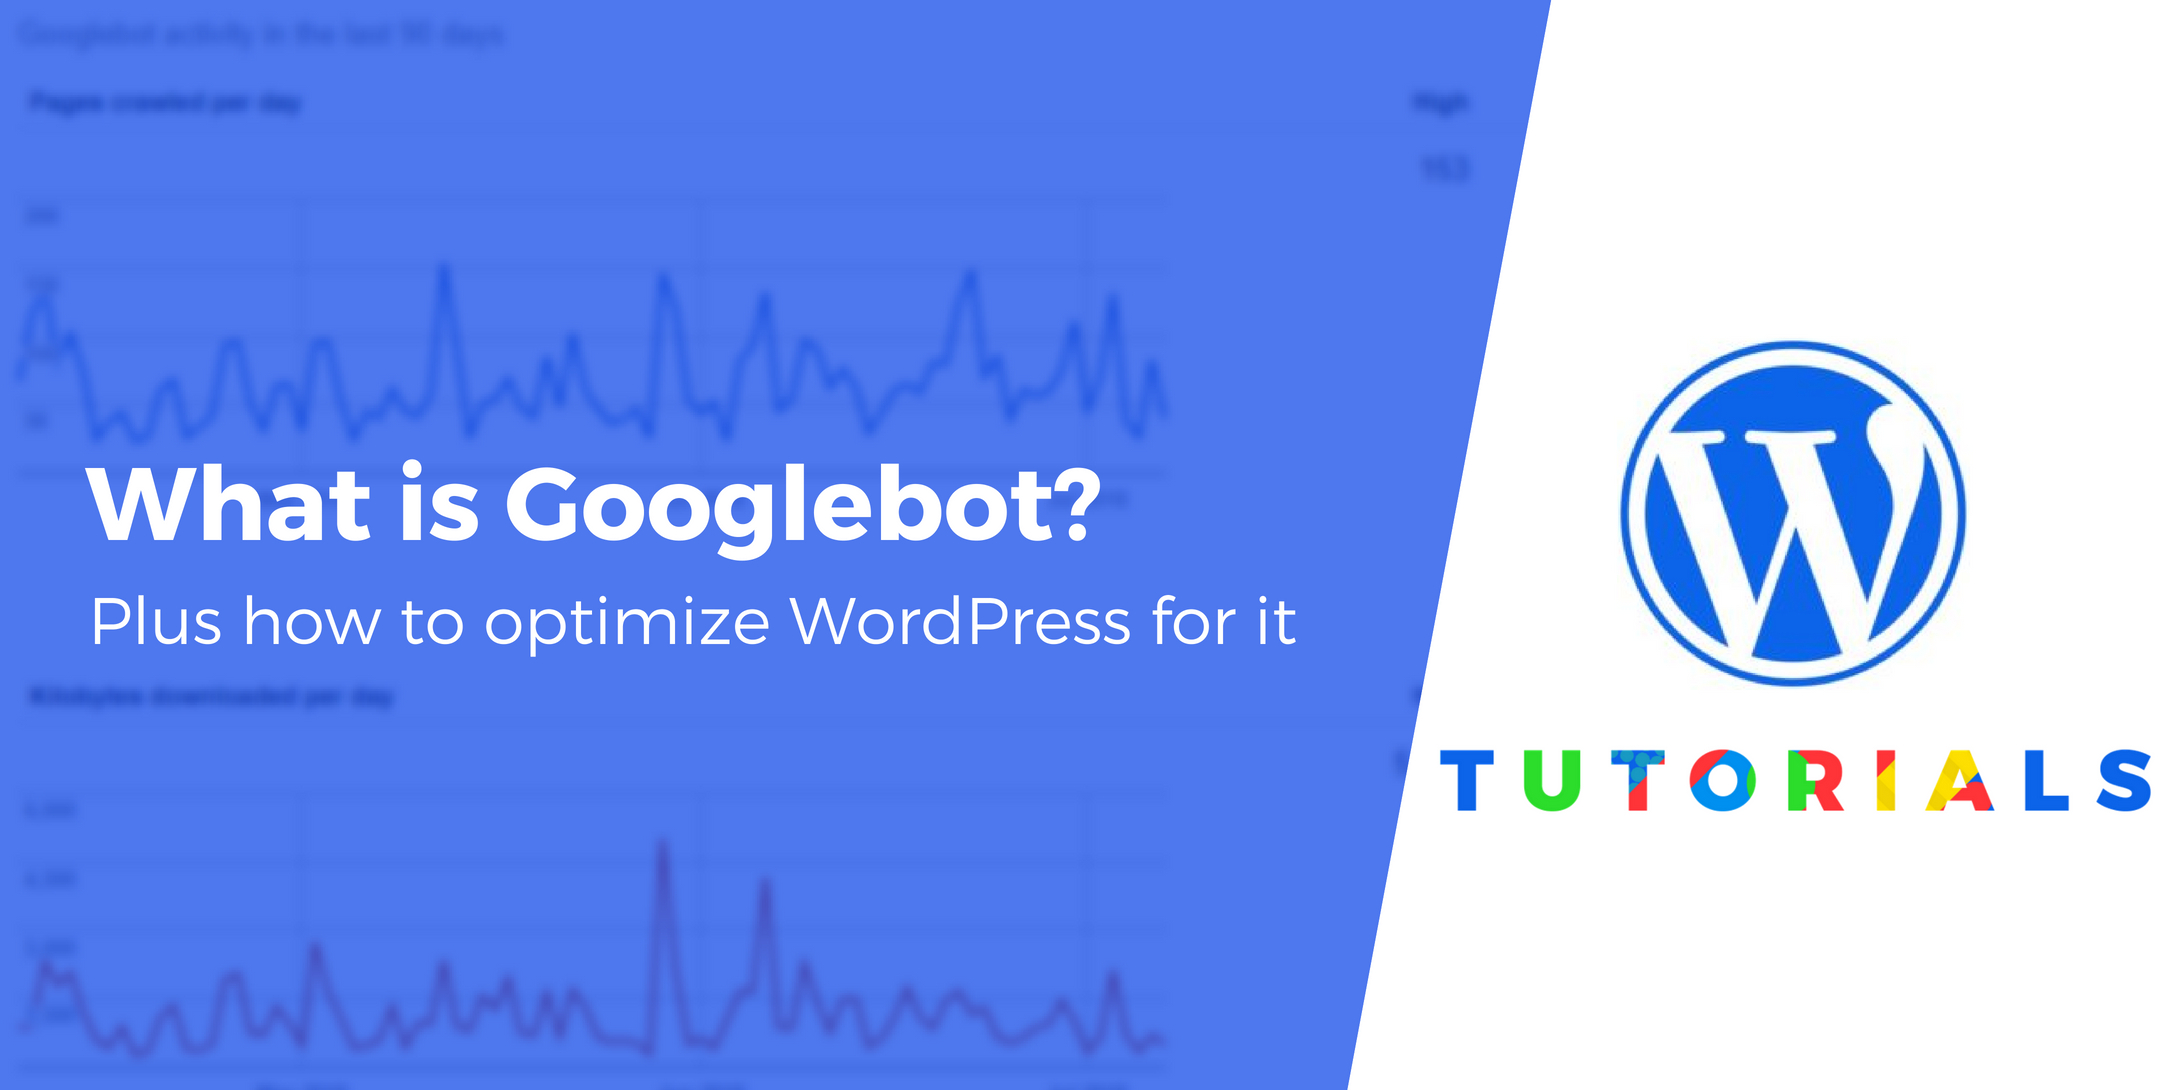 What Is Googlebot?